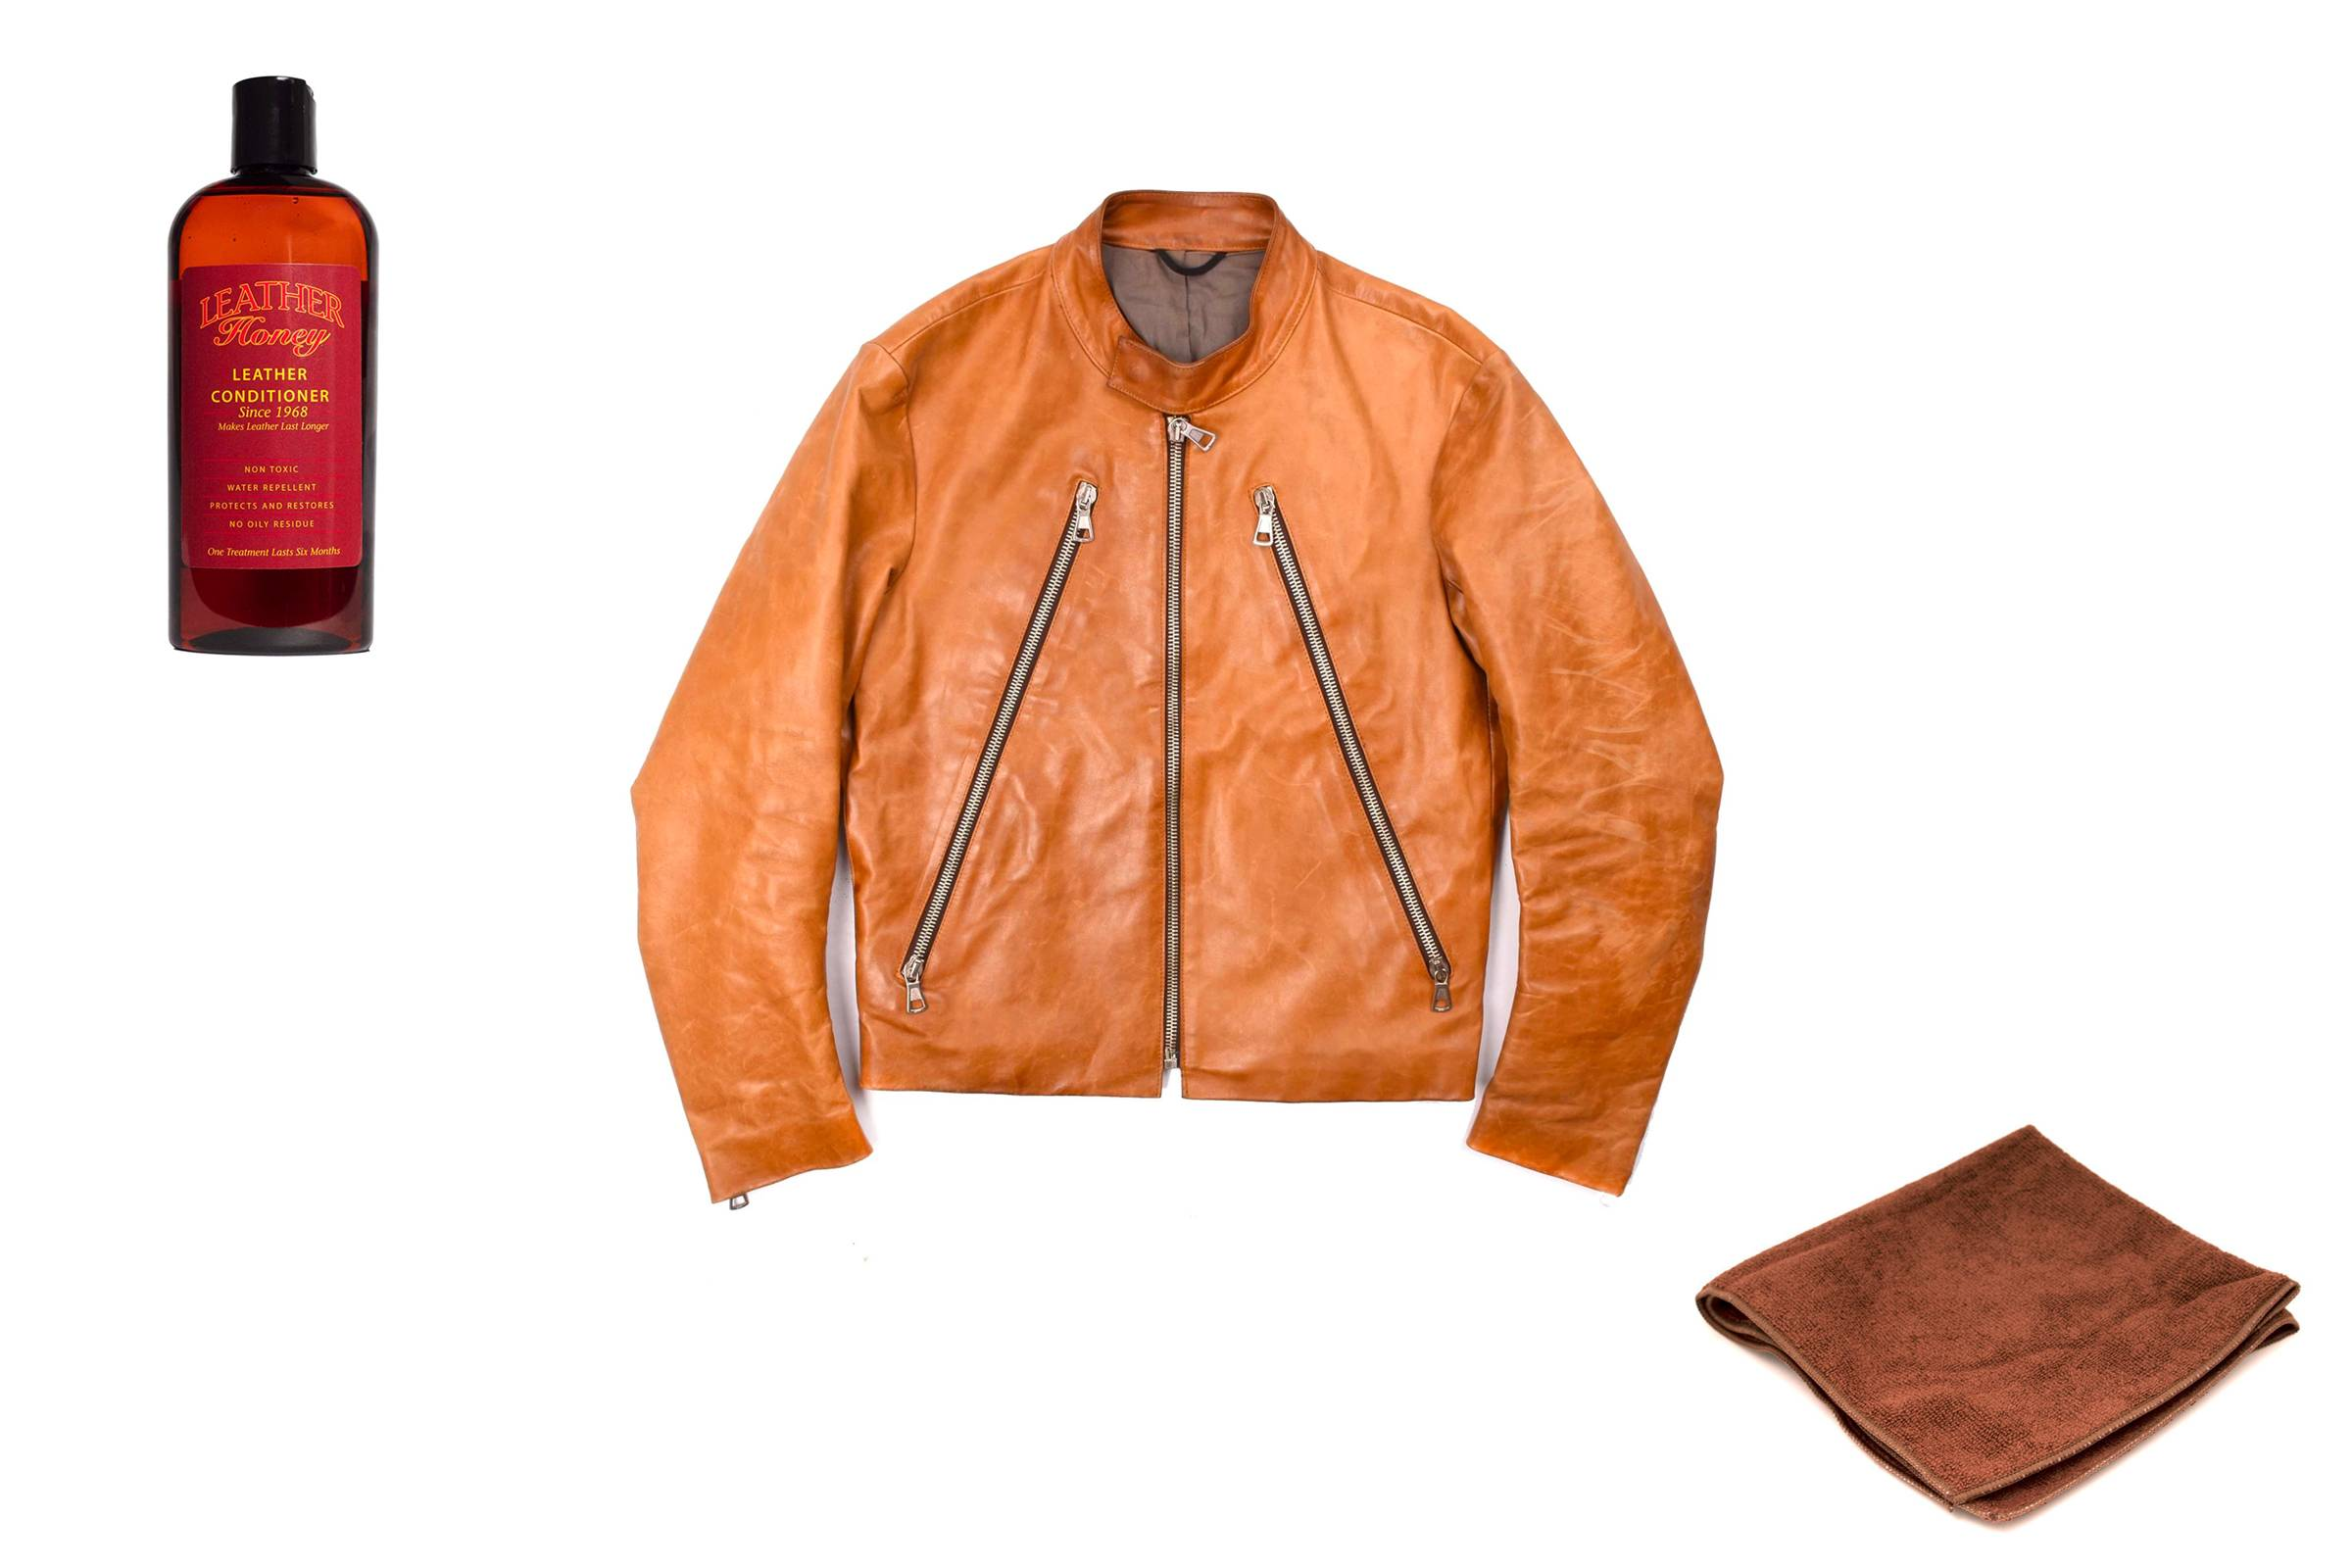 Conditioning Your Leather Jacket